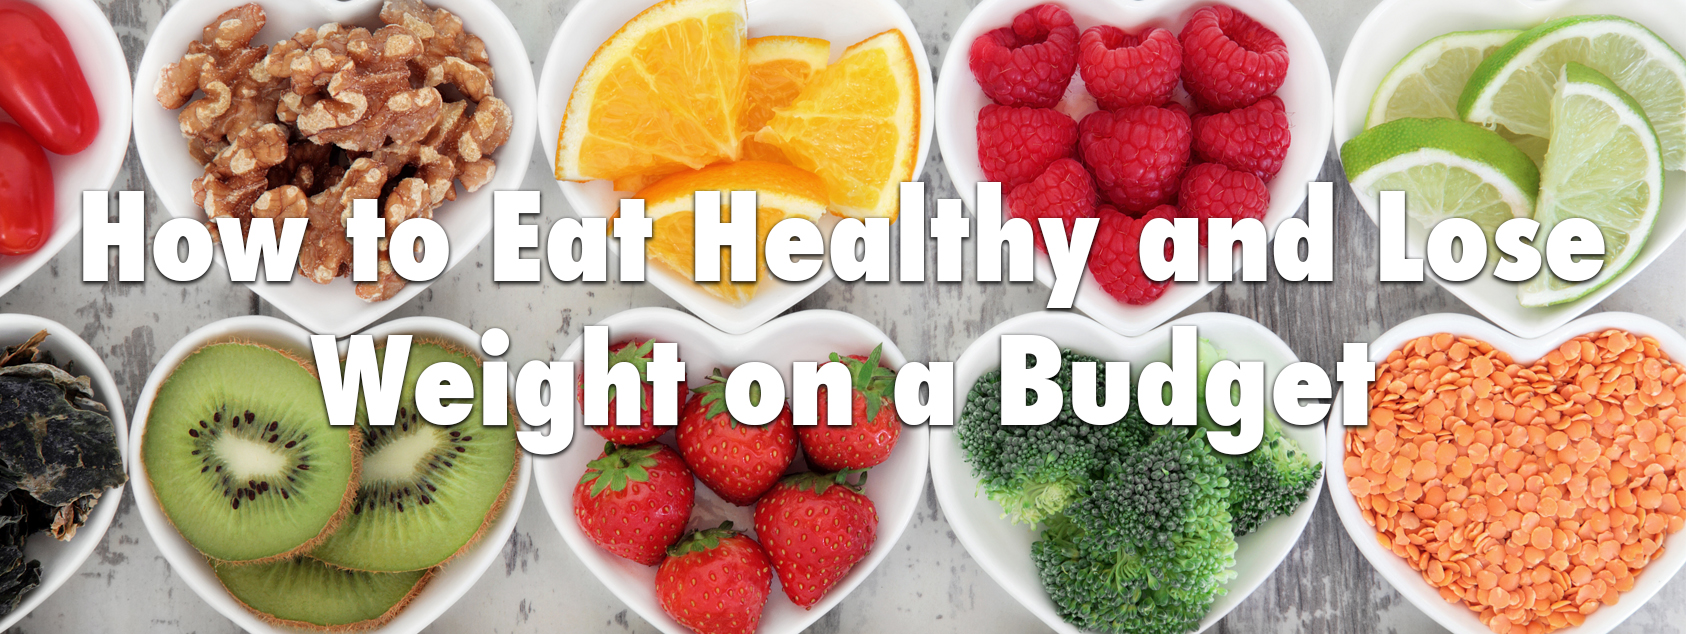 Official Health And Wellness Blog Of Fit Body Boot Camp How To Eat